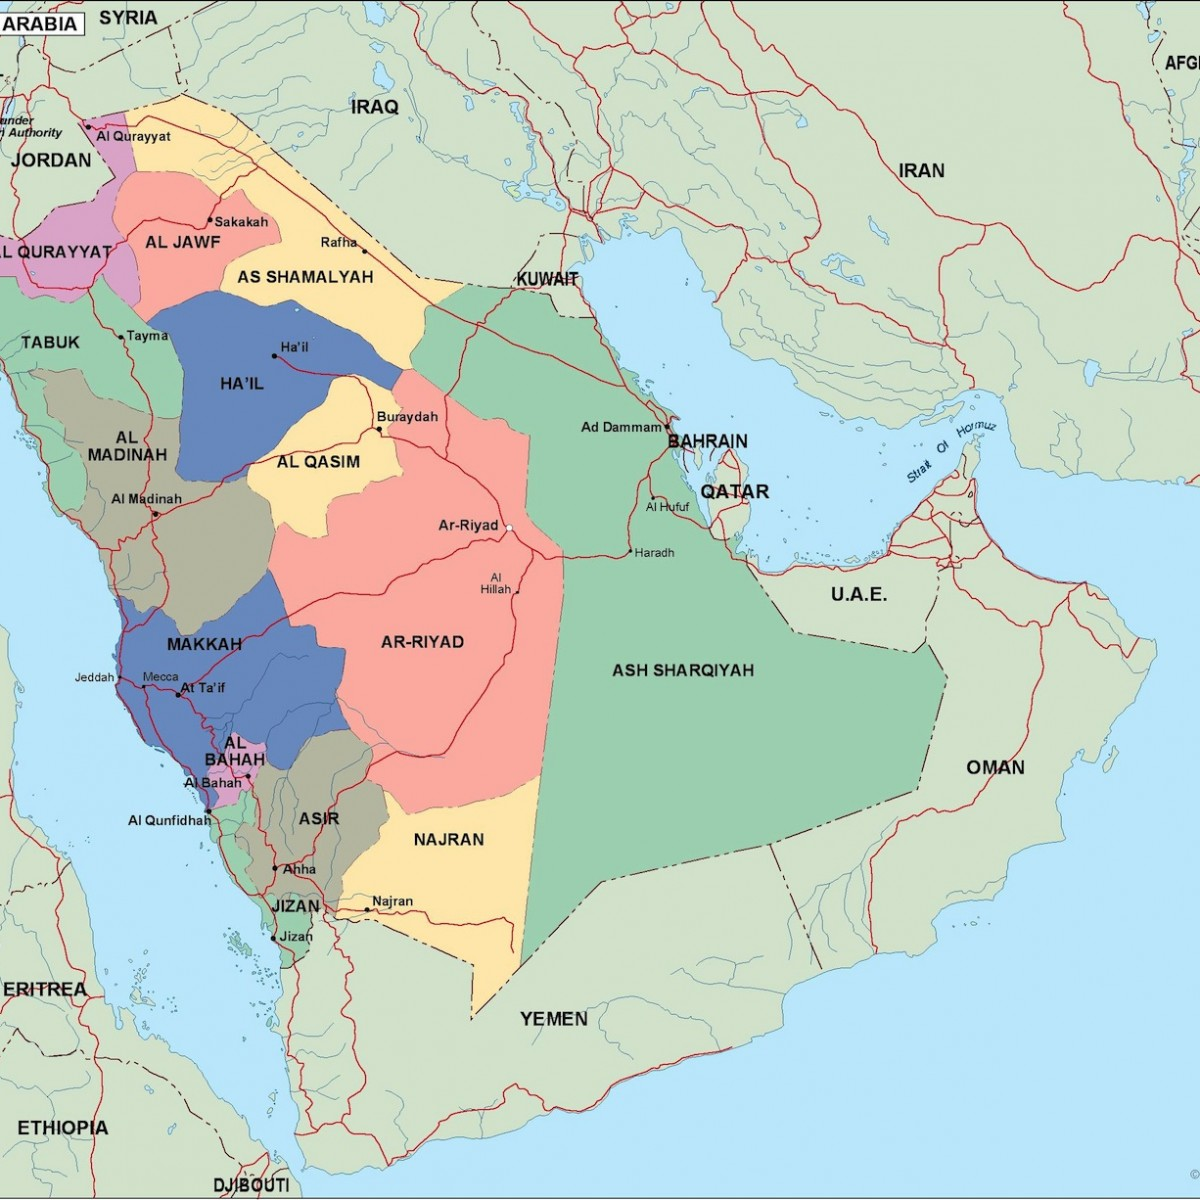 saudi arabia political map Eps Illustrator Map Our cartographers